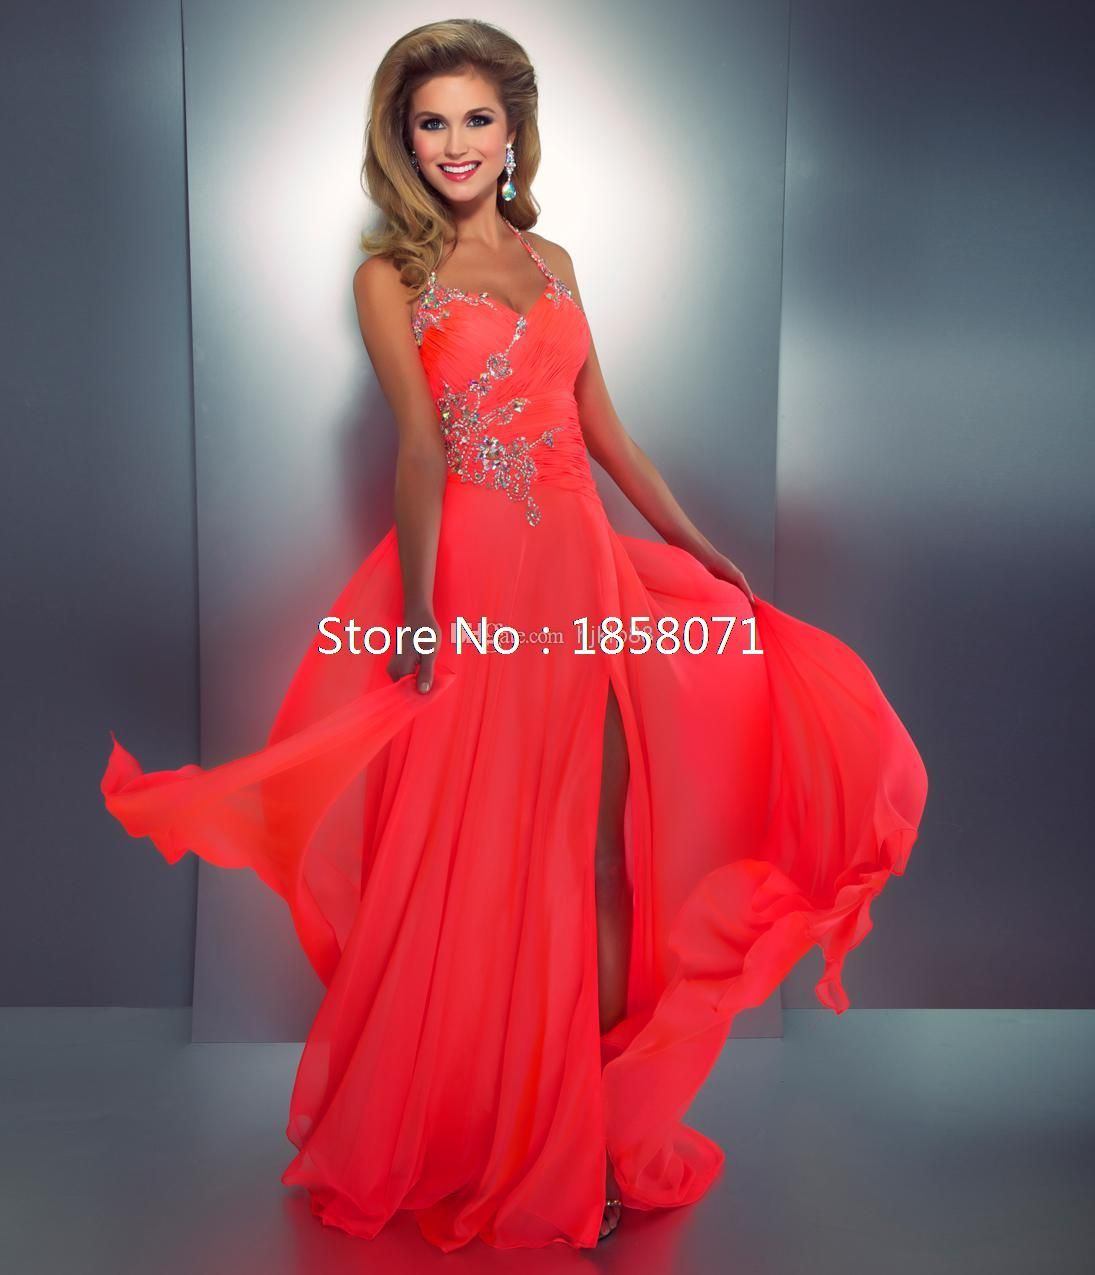 d30e65813e Popular Neon Prom Dresses-Buy Cheap Neon Prom Dresses lots from ...